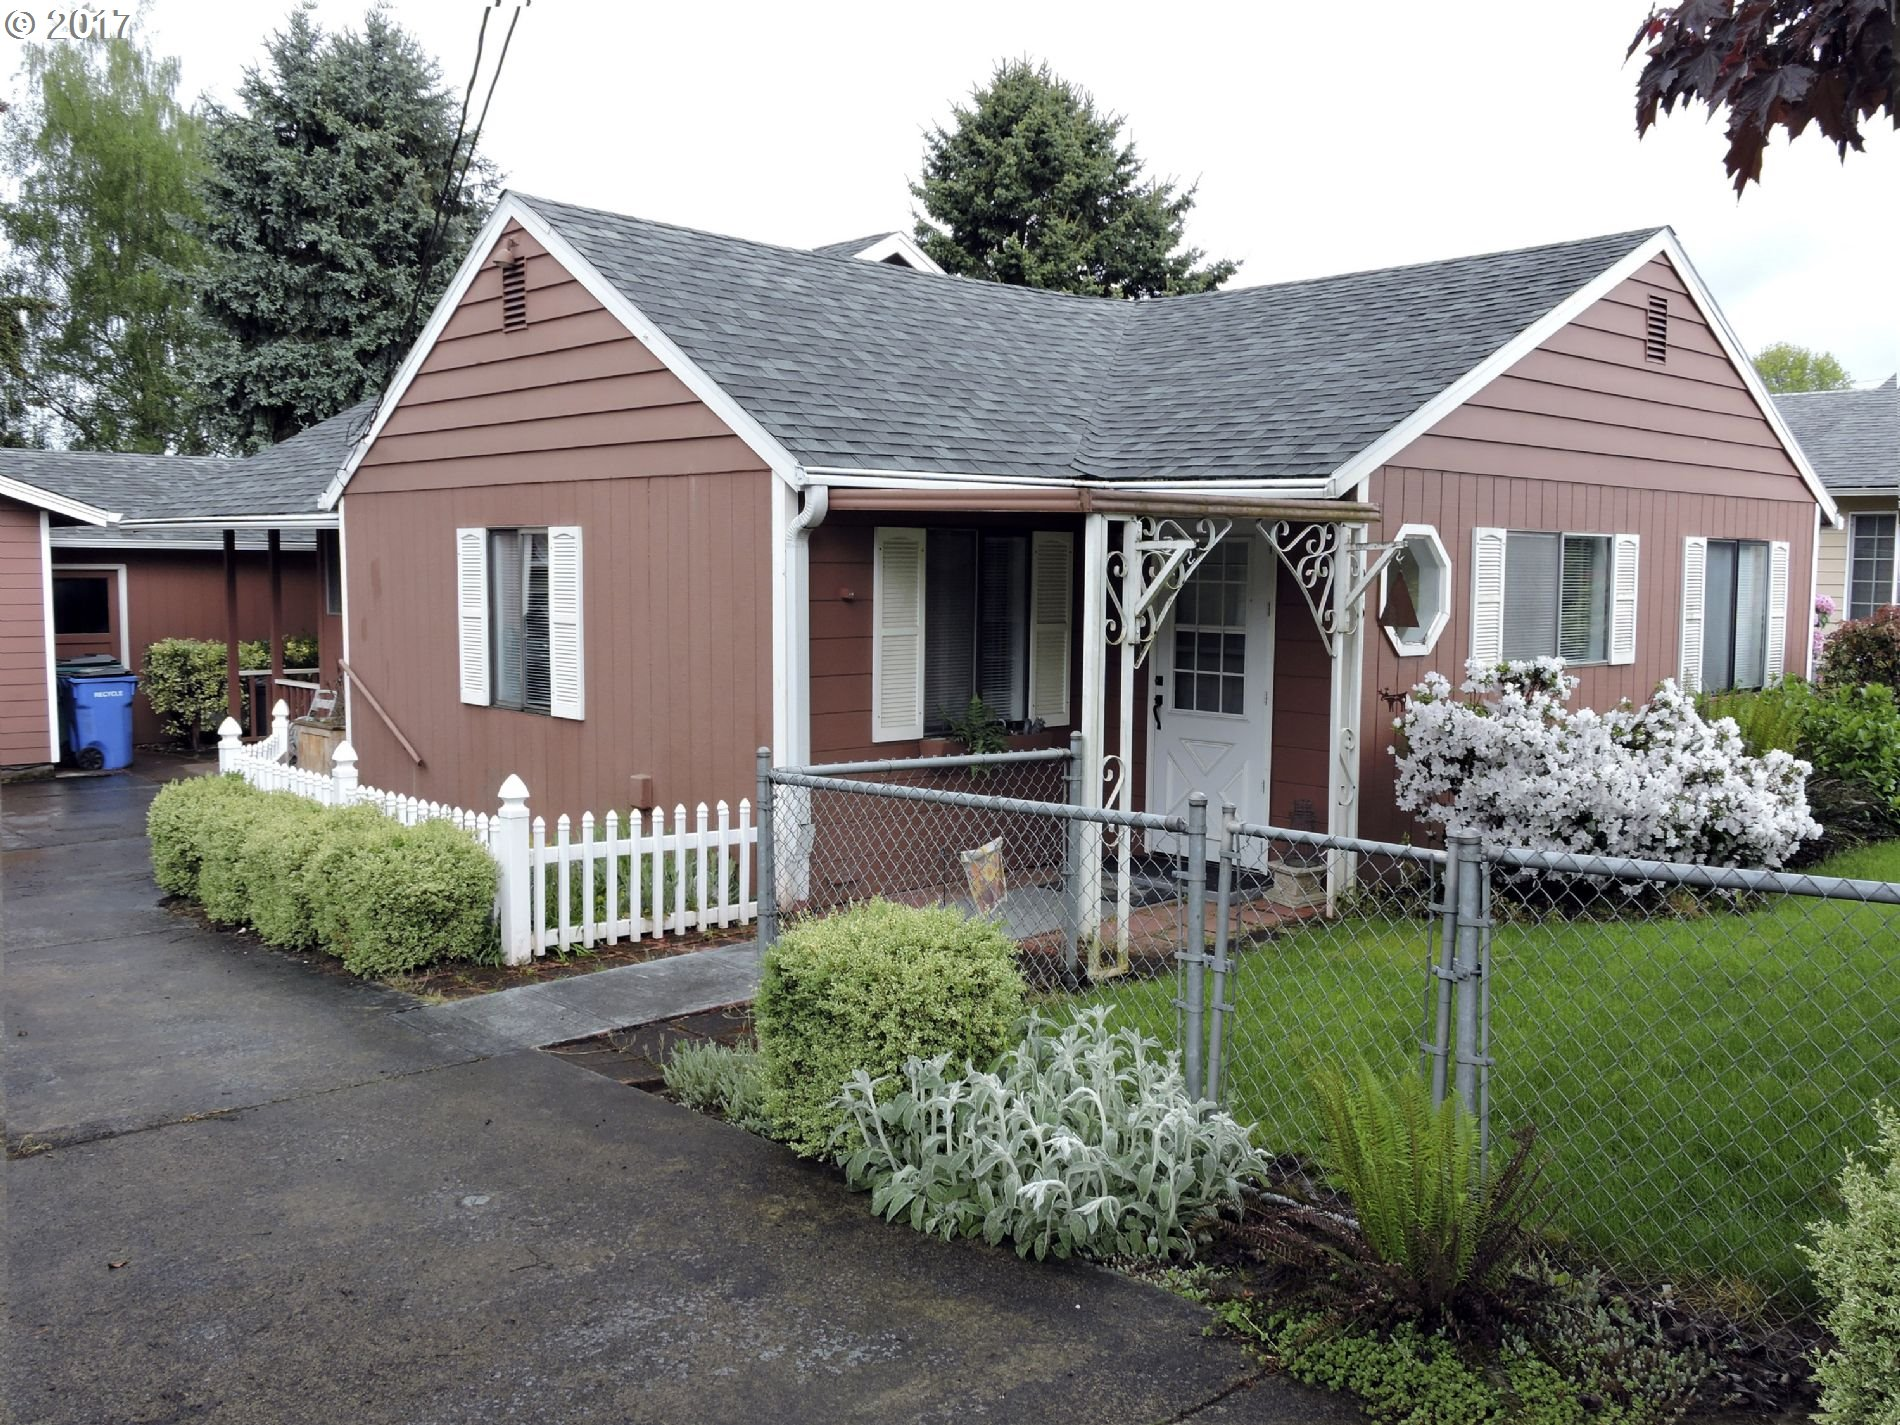 10618 NW 26TH AVE, Vancouver, WA 98685